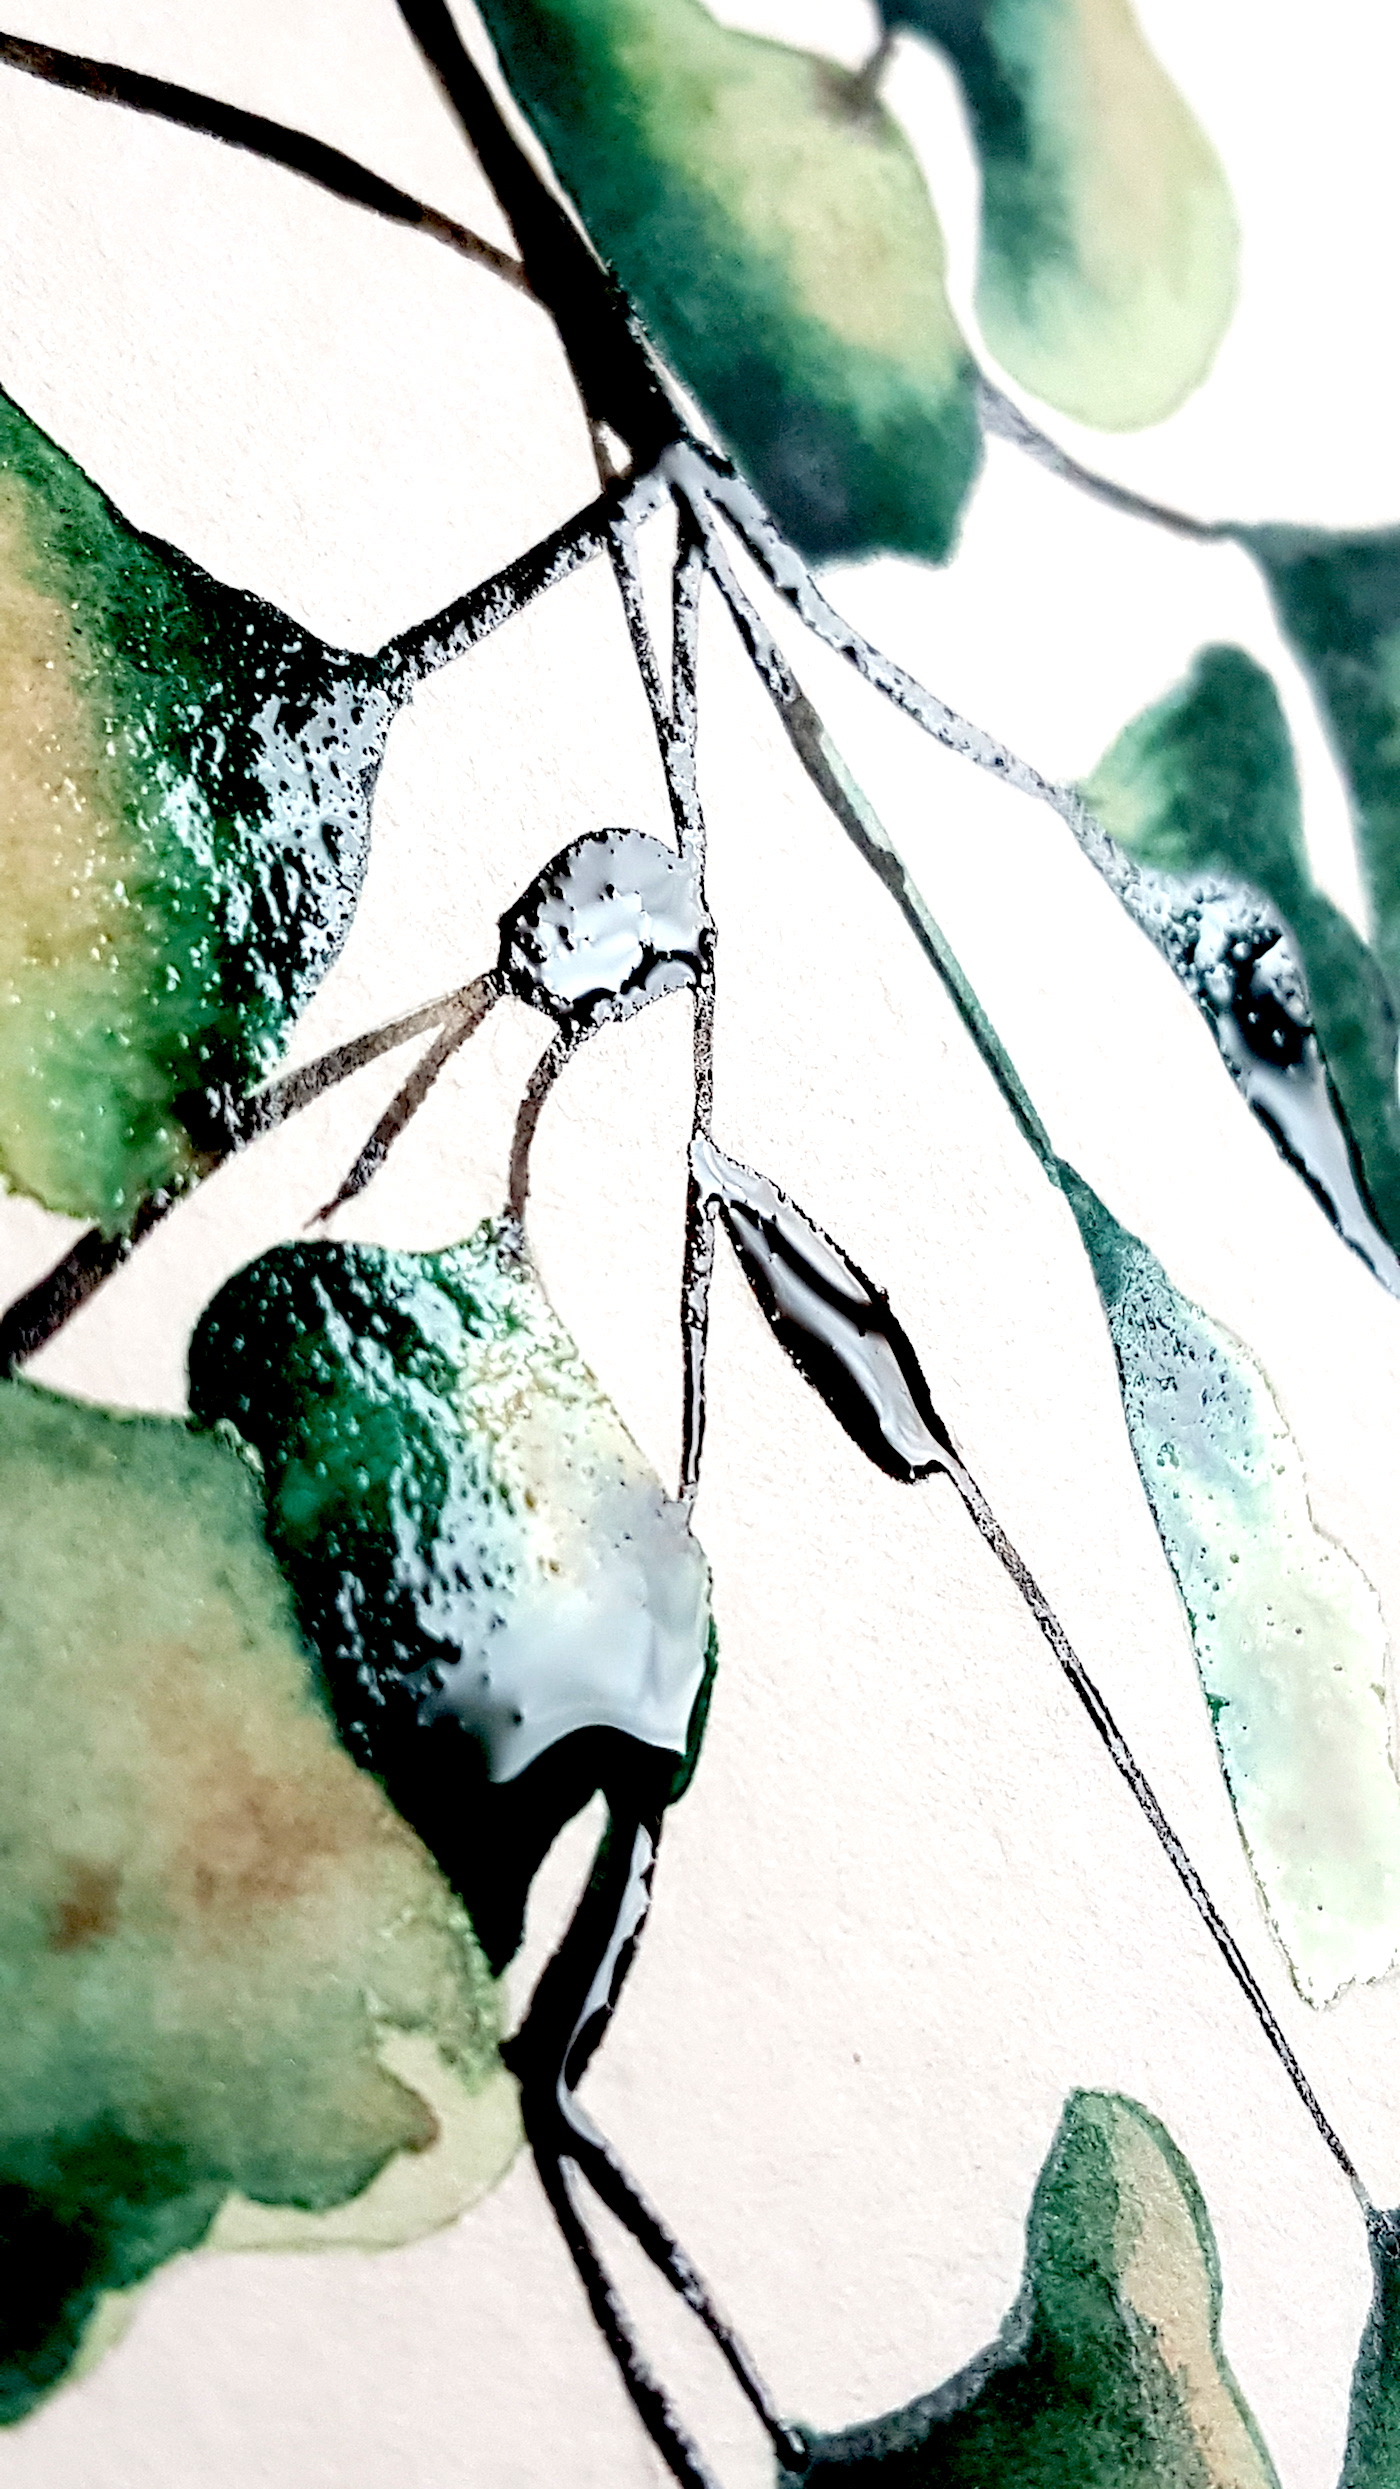 Floral Abstract illustrations with green leaves close up detail